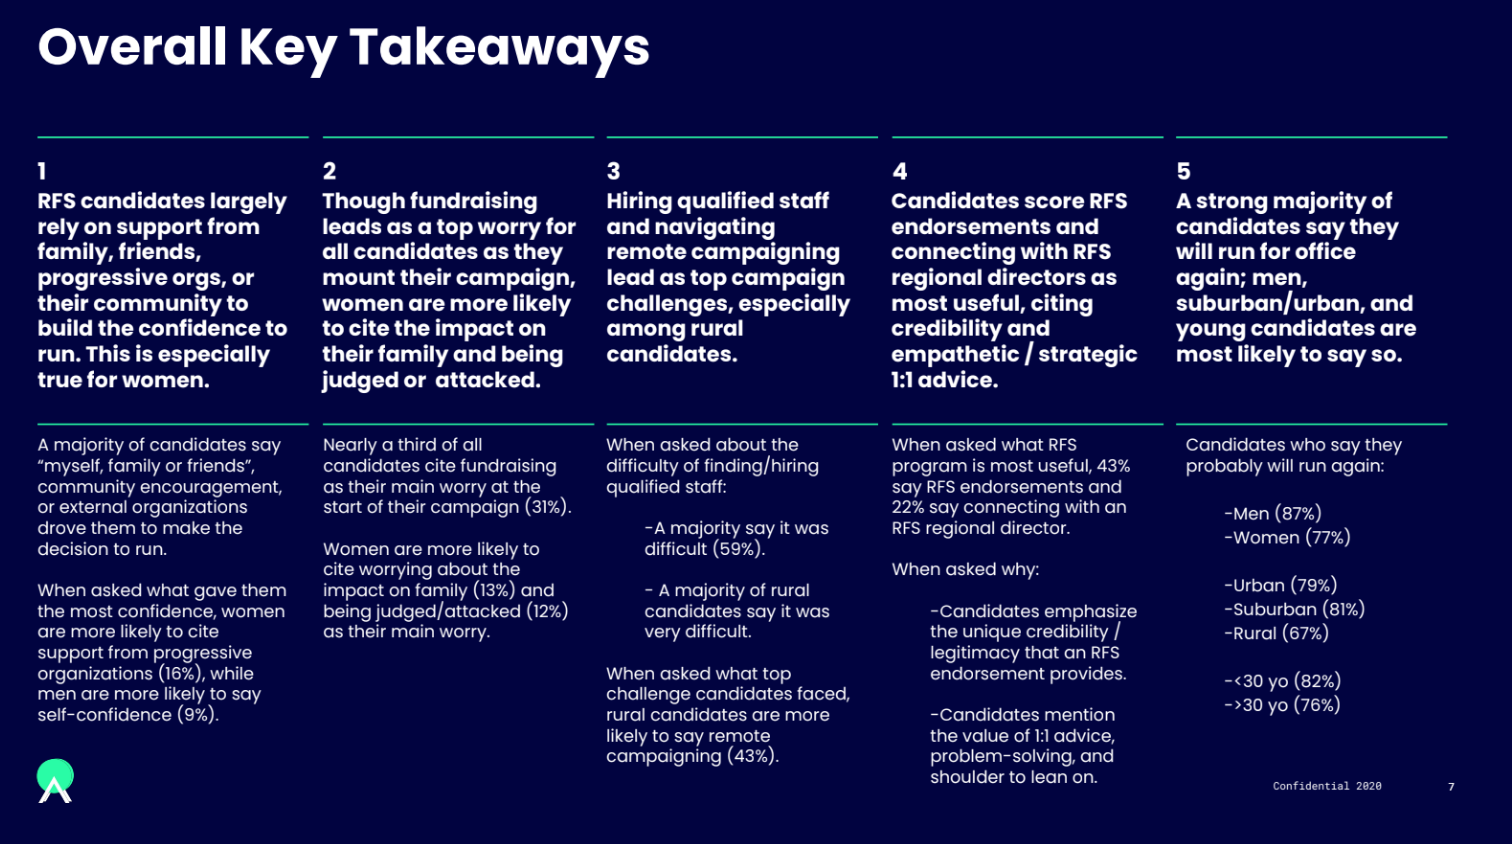 The key takeaways: Our work matters.